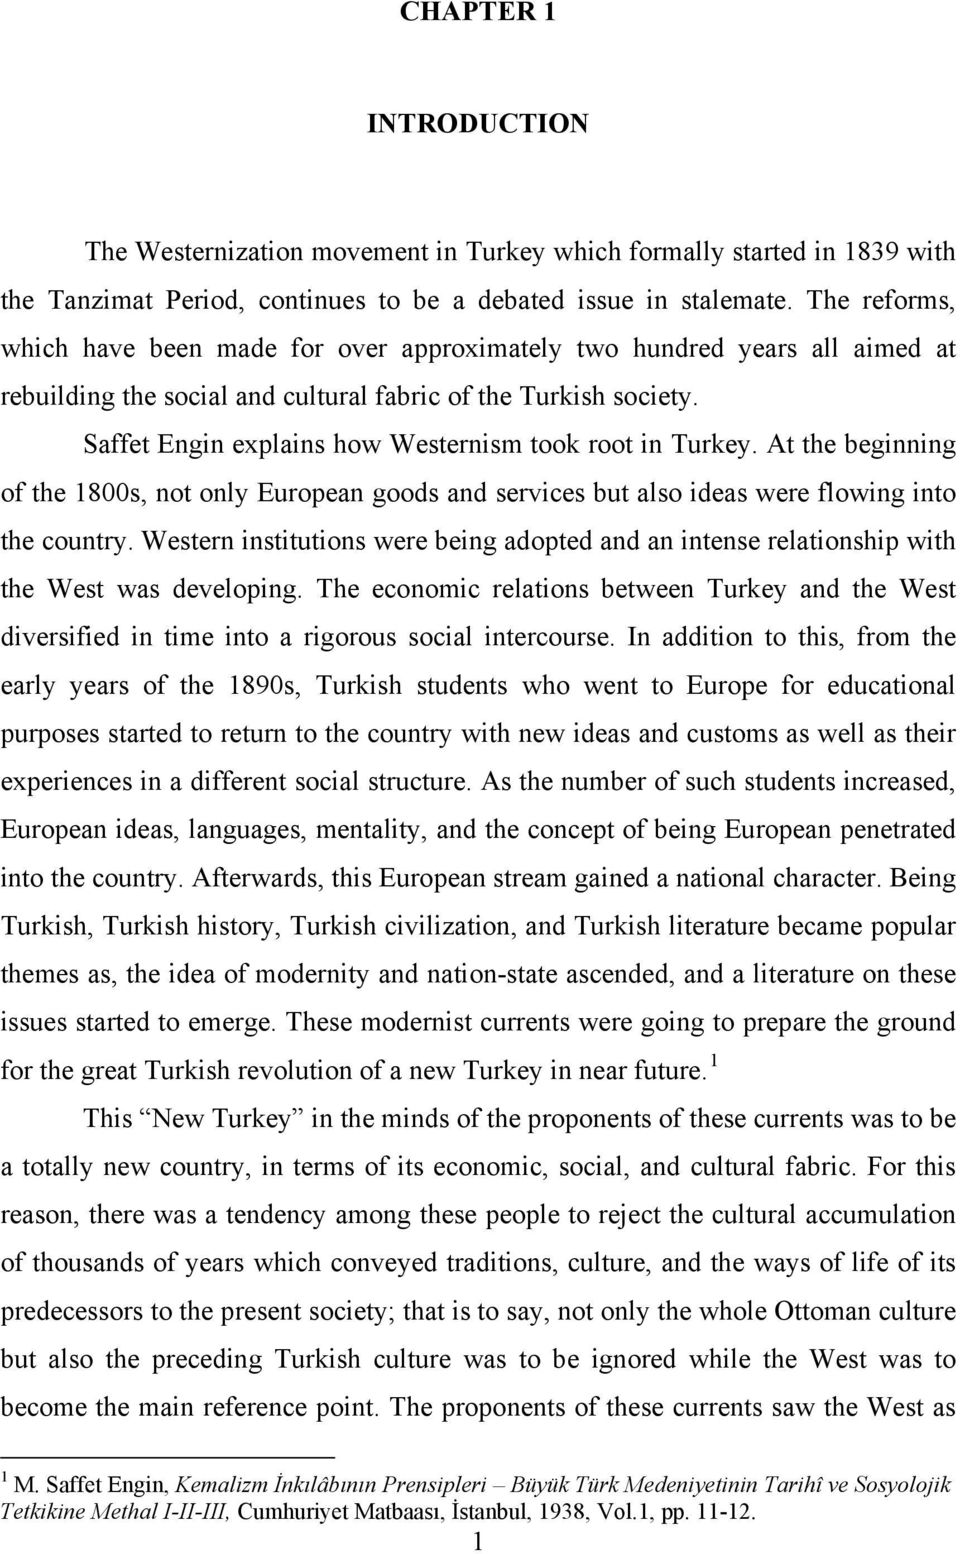 Saffet Engin explains how Westernism took root in Turkey. At the beginning of the 1800s, not only European goods and services but also ideas were flowing into the country.